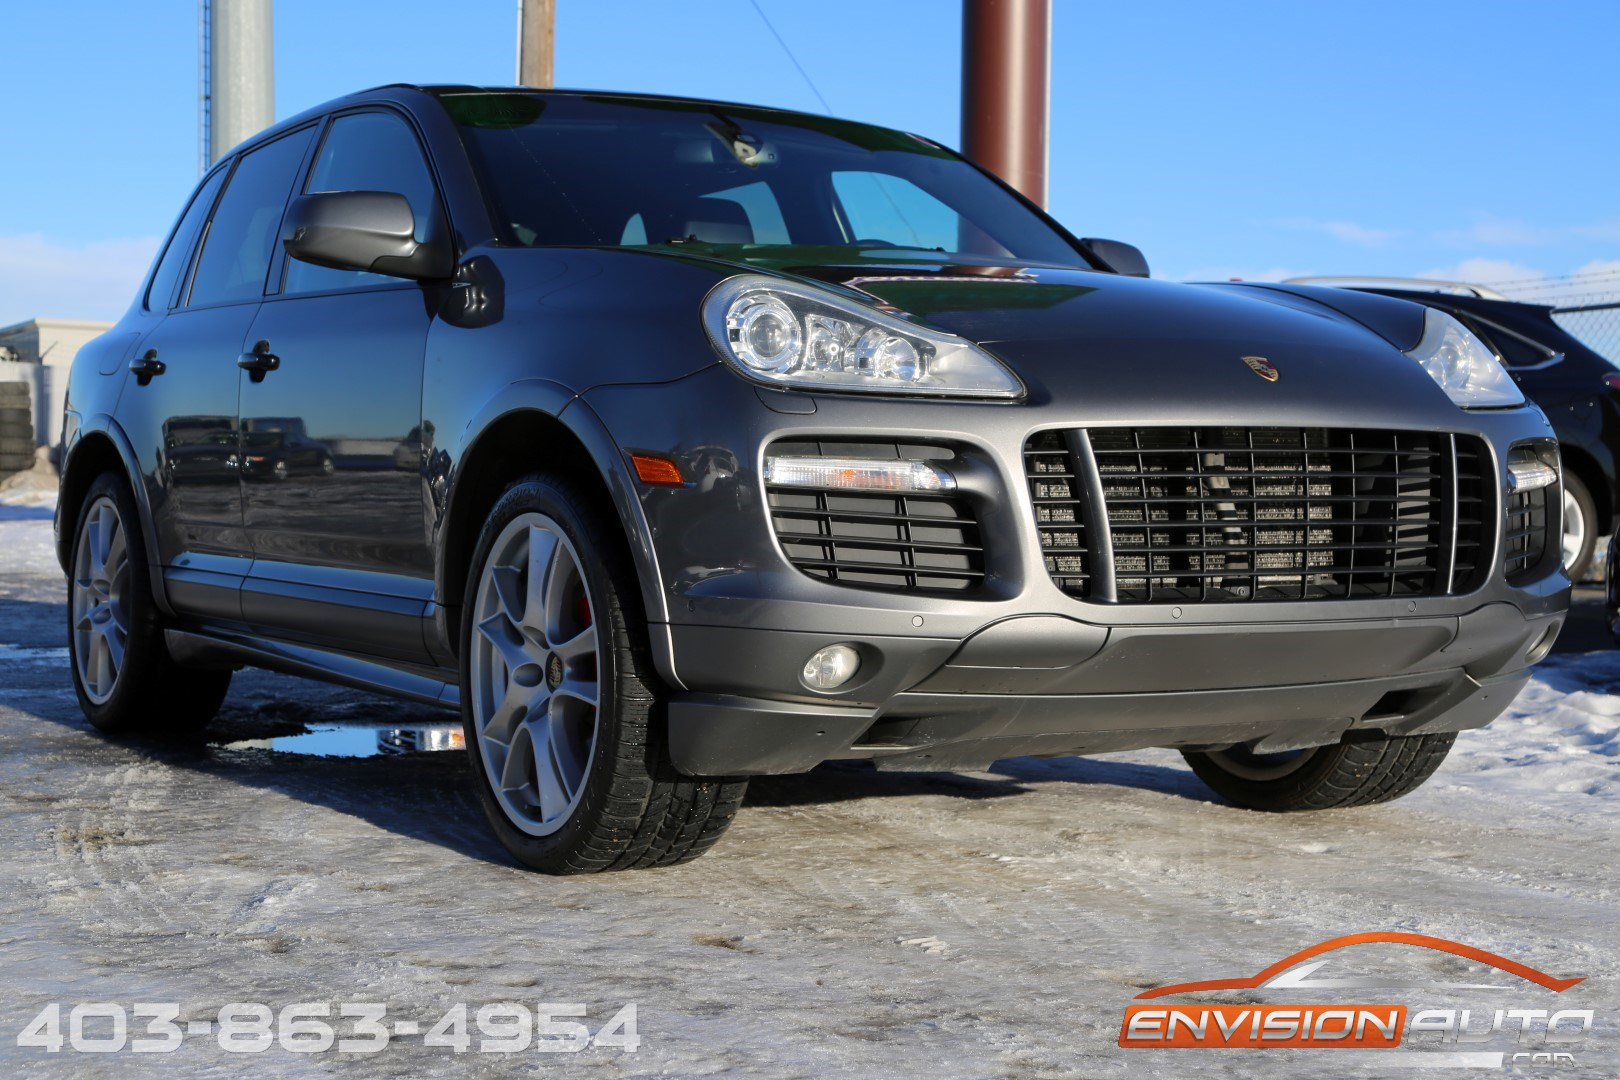 2009 porsche cayenne gts awd envision auto calgary highline luxury sports cars suv specialists. Black Bedroom Furniture Sets. Home Design Ideas